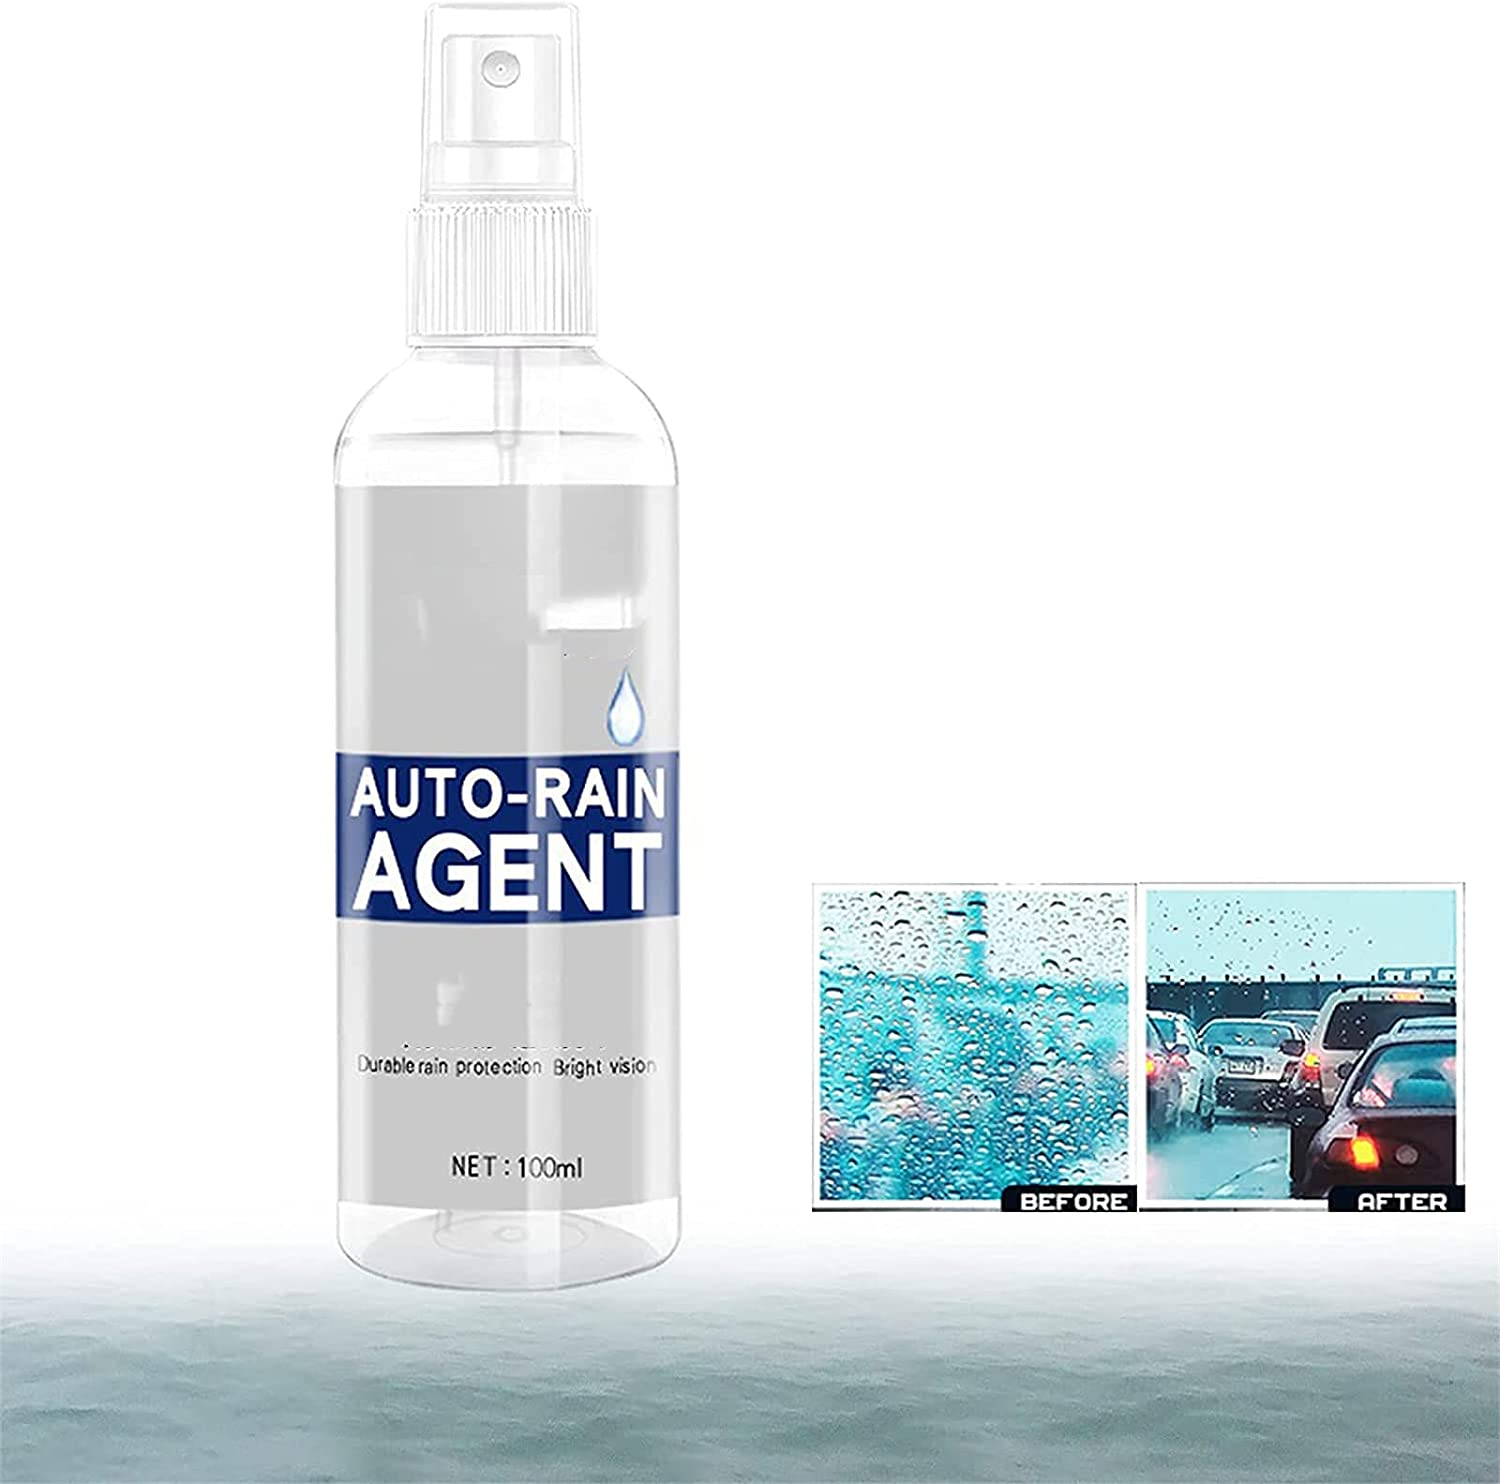 Car Glass Waterproof Inventory cleanup selling sale Coating Agent Max 72% OFF Multifunctional Anti Spra Fog